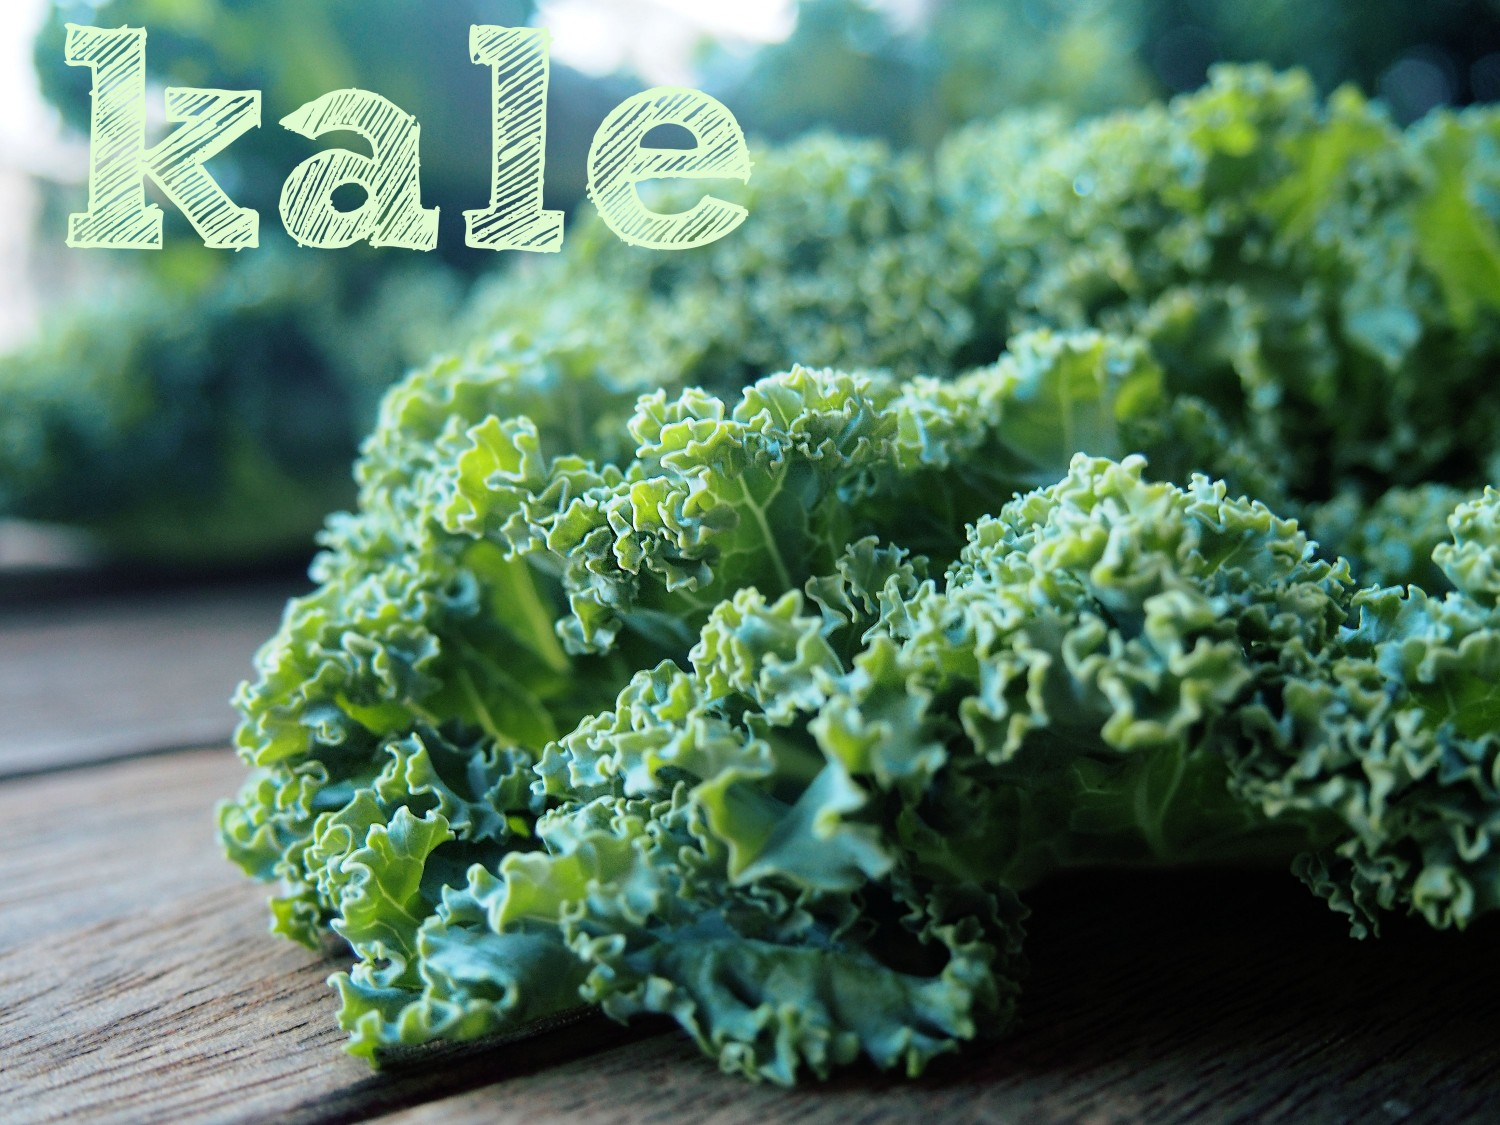 Guest post: Have you tried these 5 ways to cook kale?